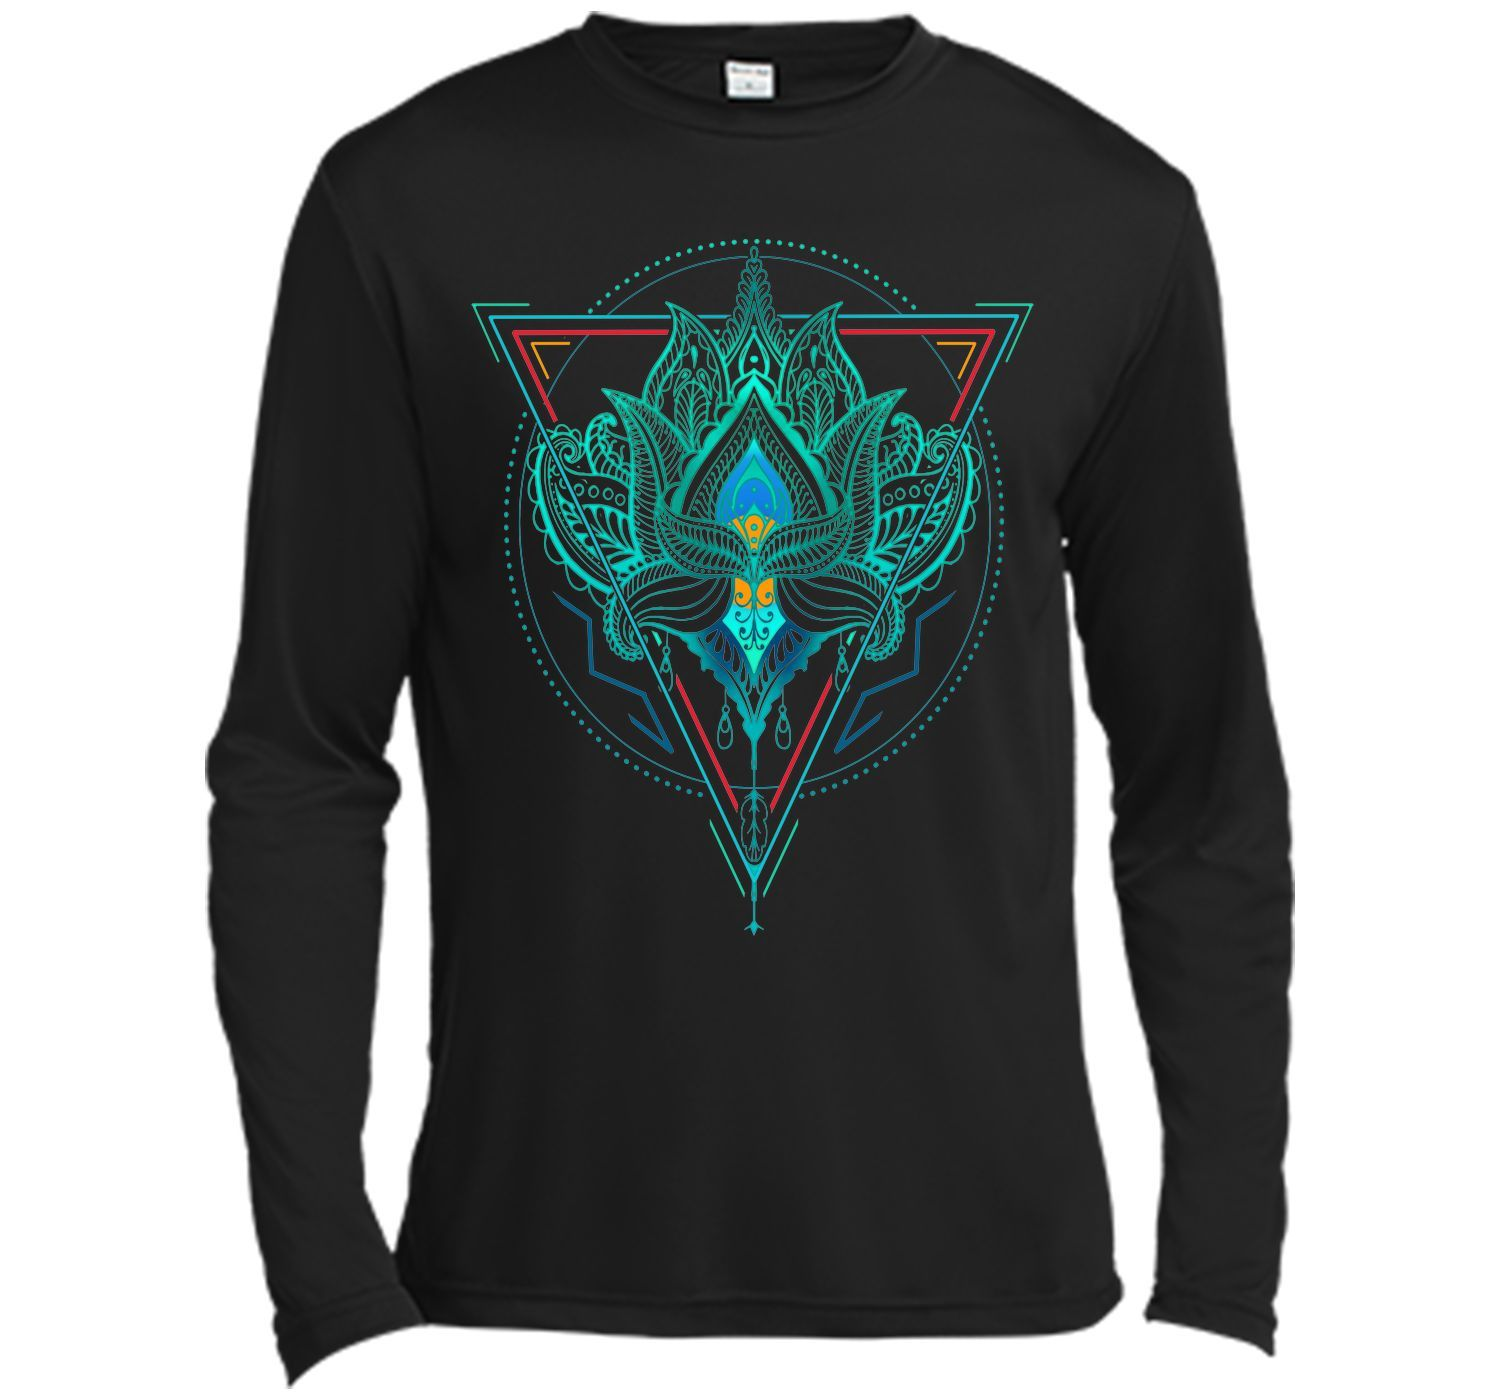 Adorable Lotus The Flower Of Life In Triangle 2017 T Shirt